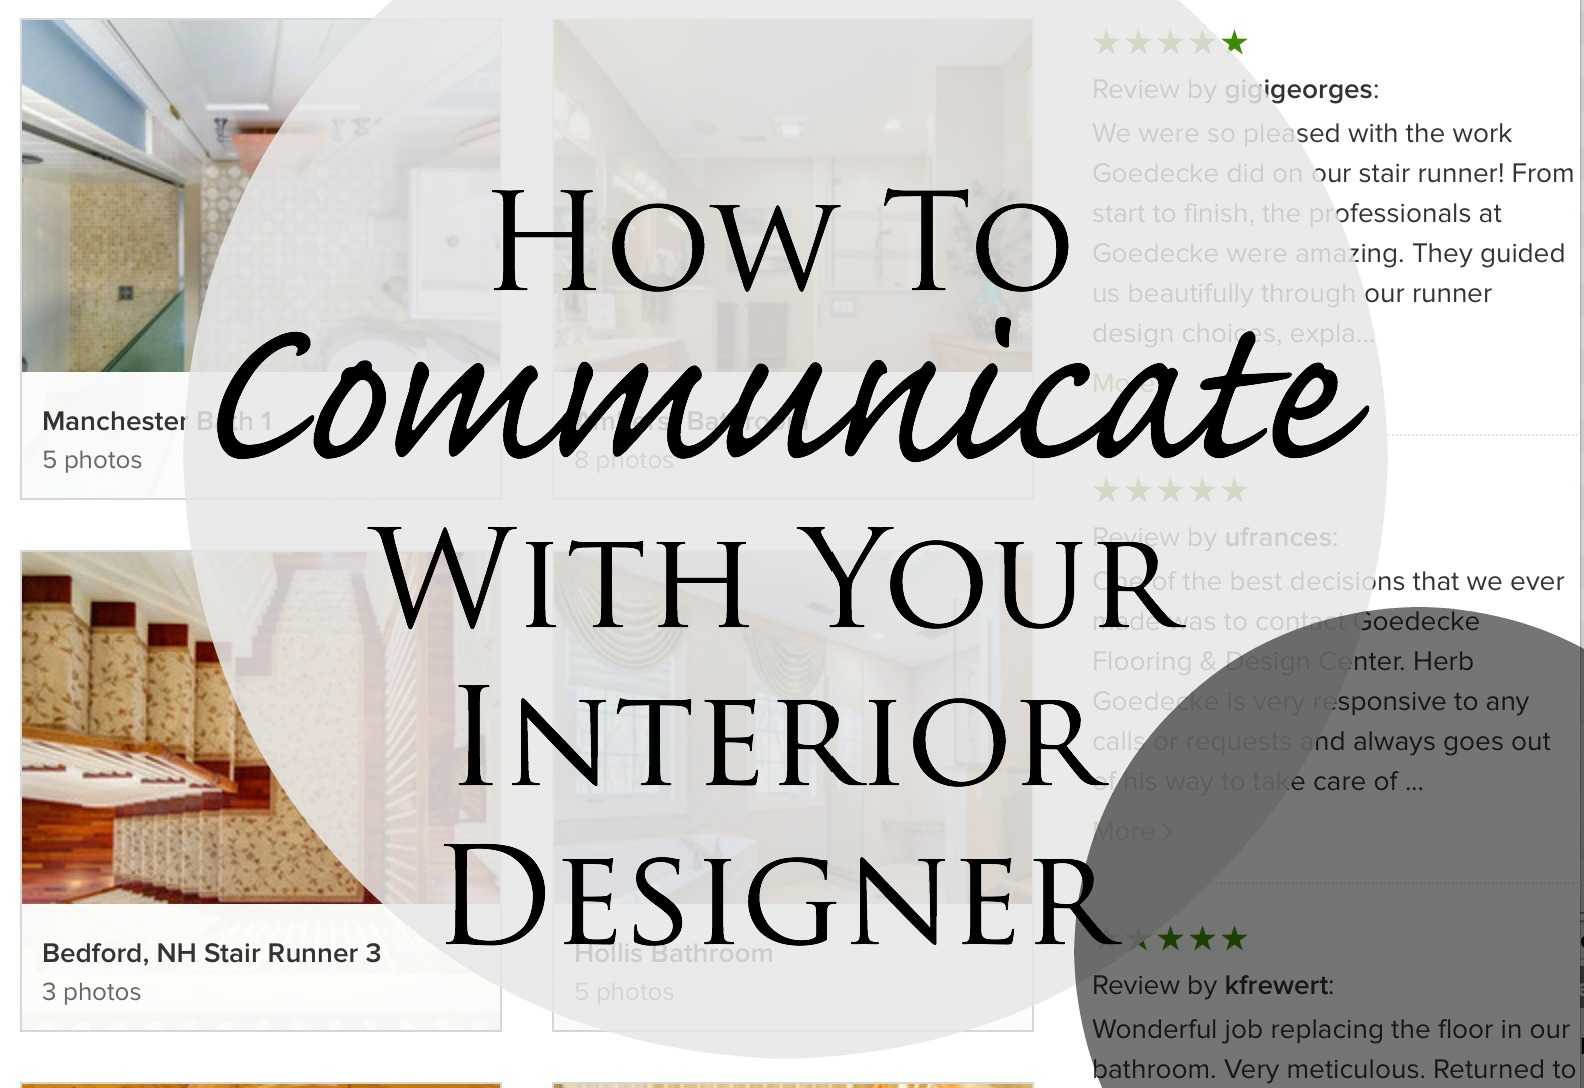 How To Communicate With Interior Designers Goedecke